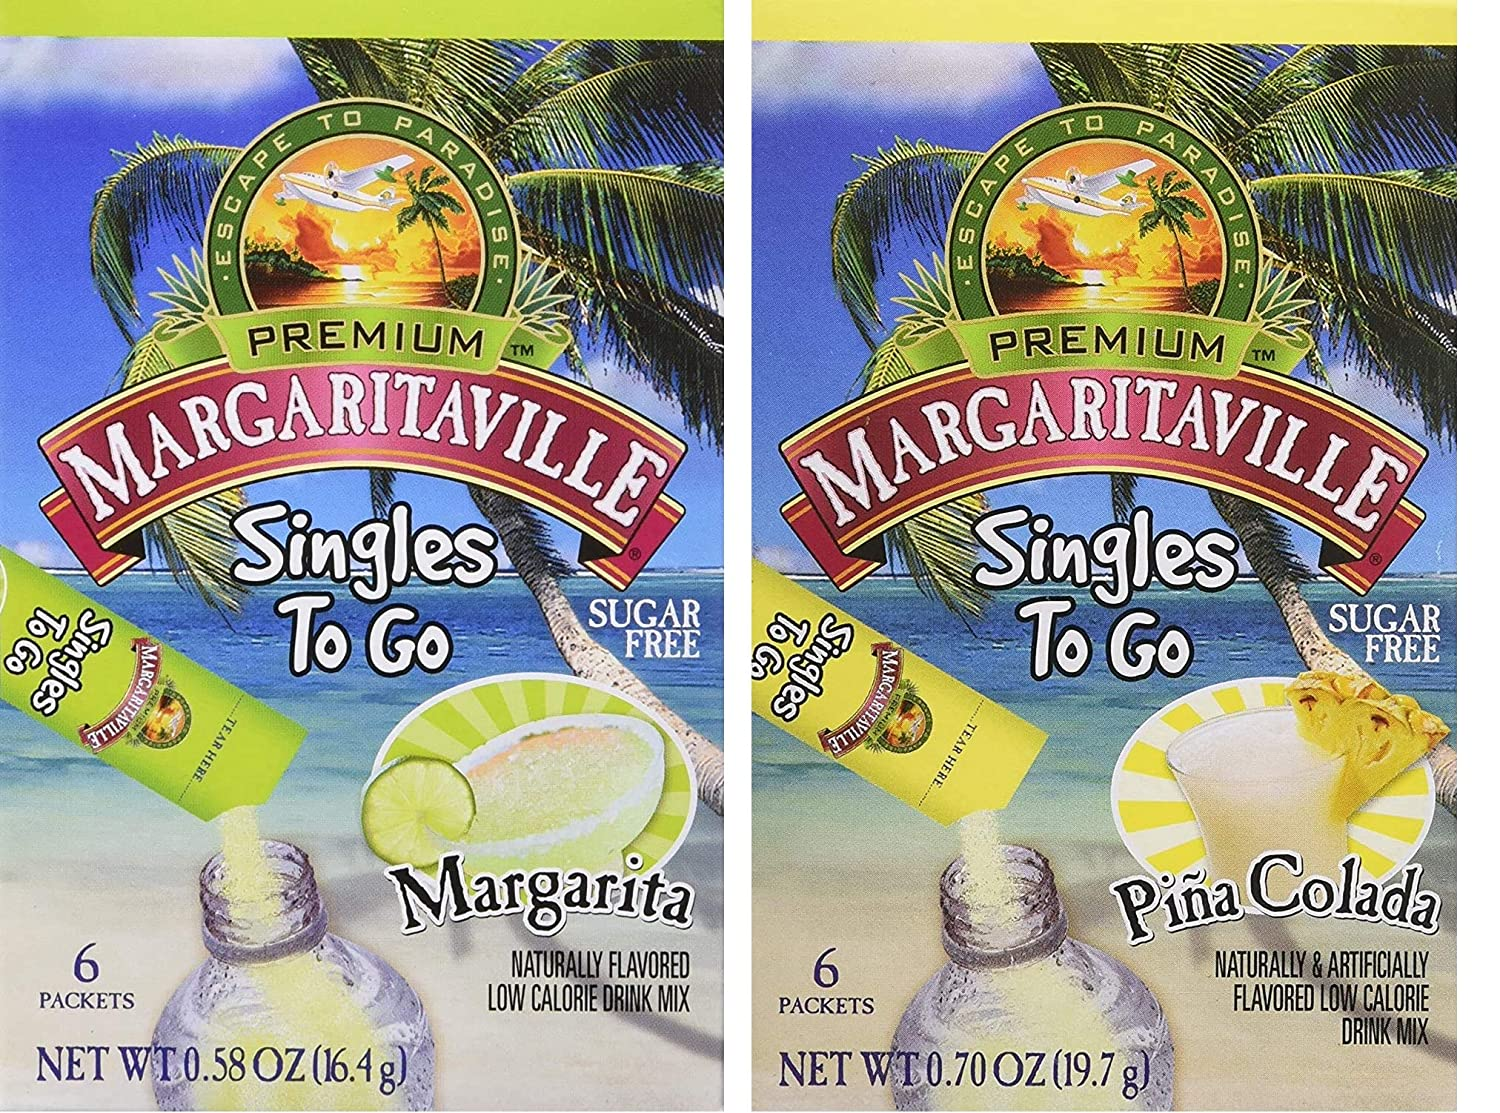 Margaritaville Singles Max 90% OFF To Go Water Mix Mail order cheap Non-Alcoho Flavored Drink